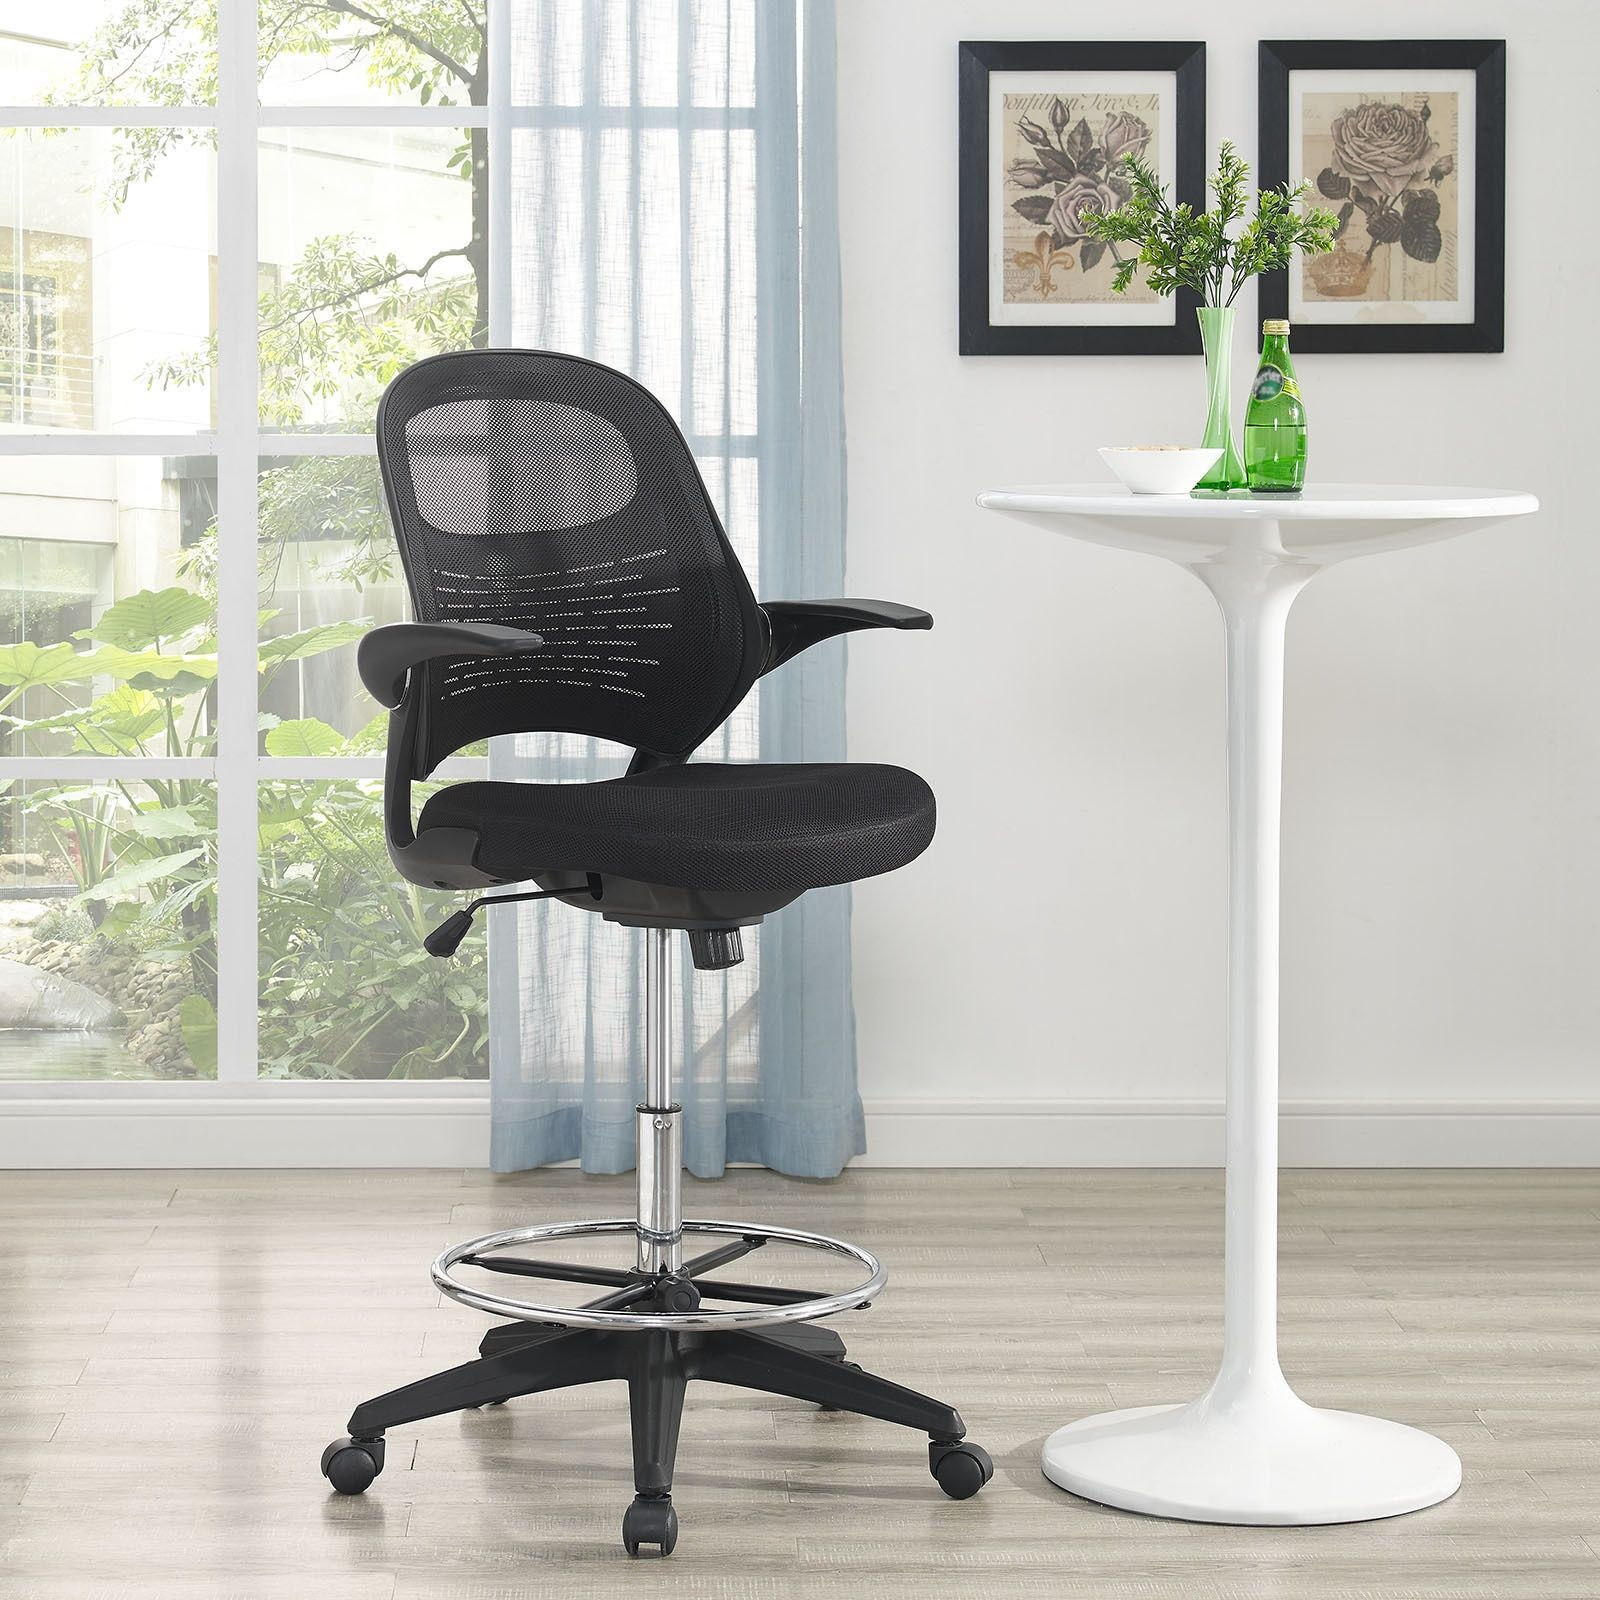 Modway Black Advance Drafting Chair Black Products Drafting